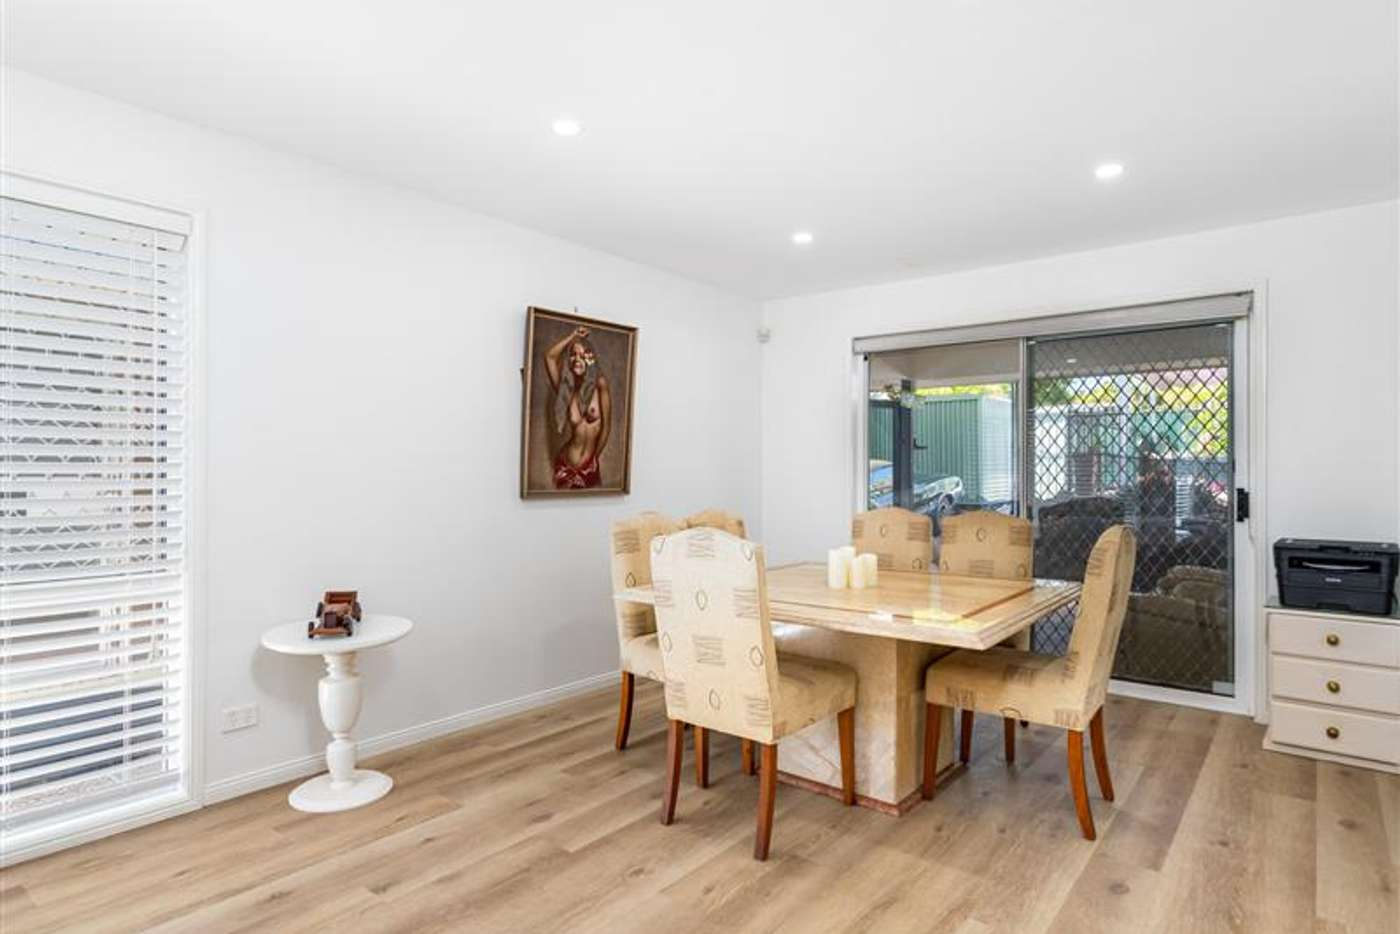 Seventh view of Homely house listing, 6 REBBECHI COURT, Parkwood QLD 4214